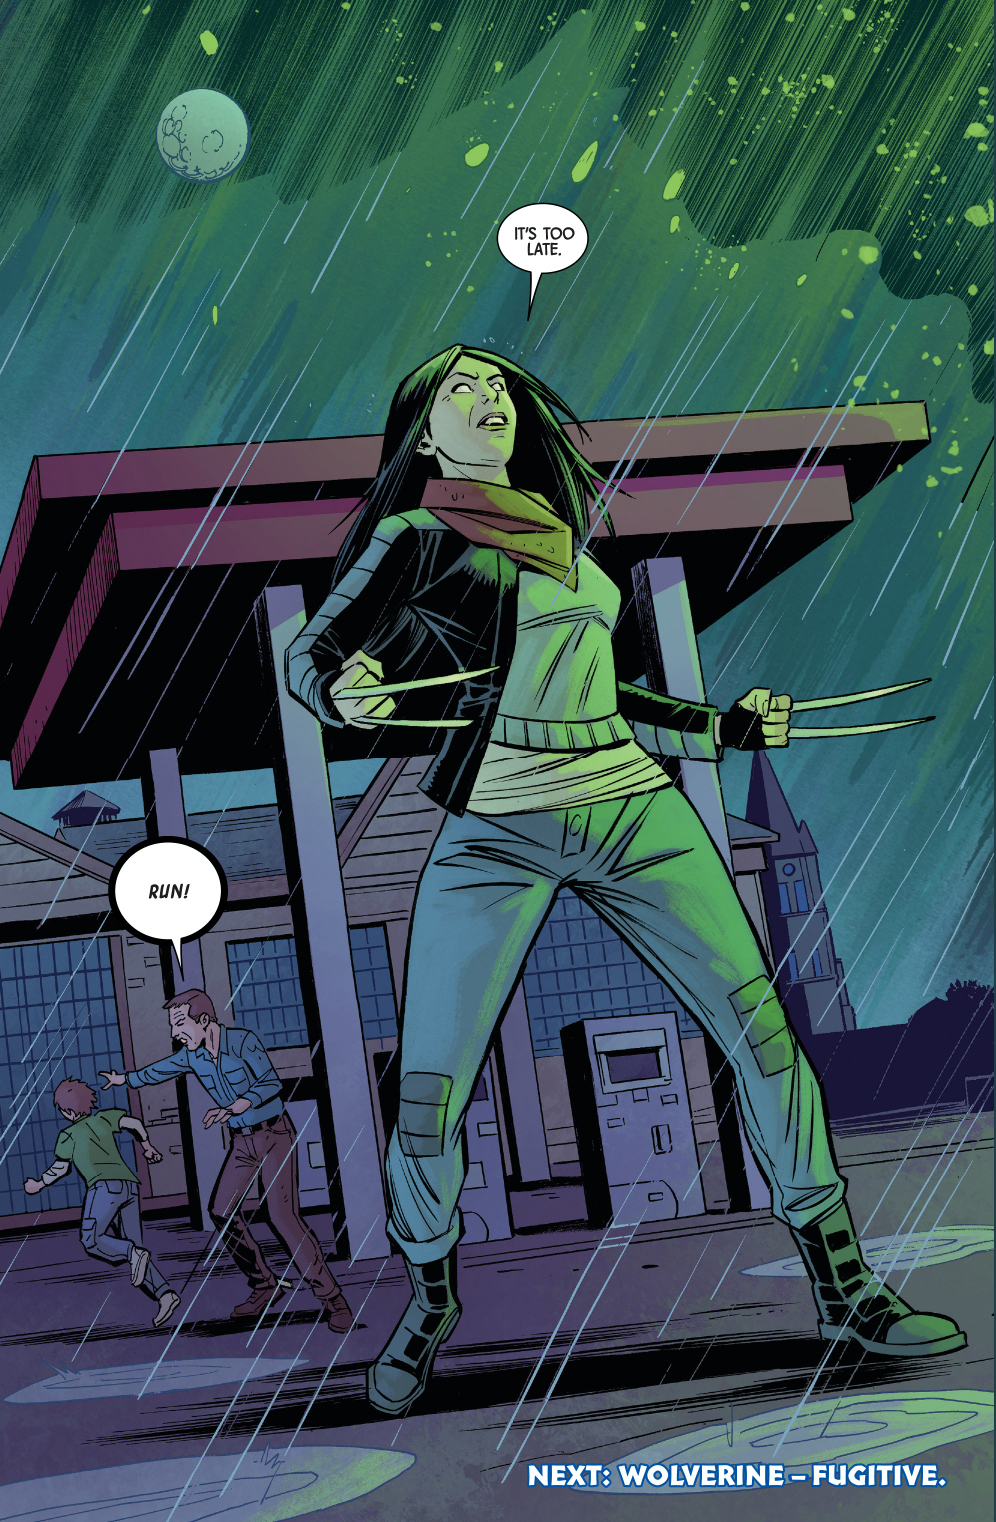 All New Wolverine Slaughters An Entire Town